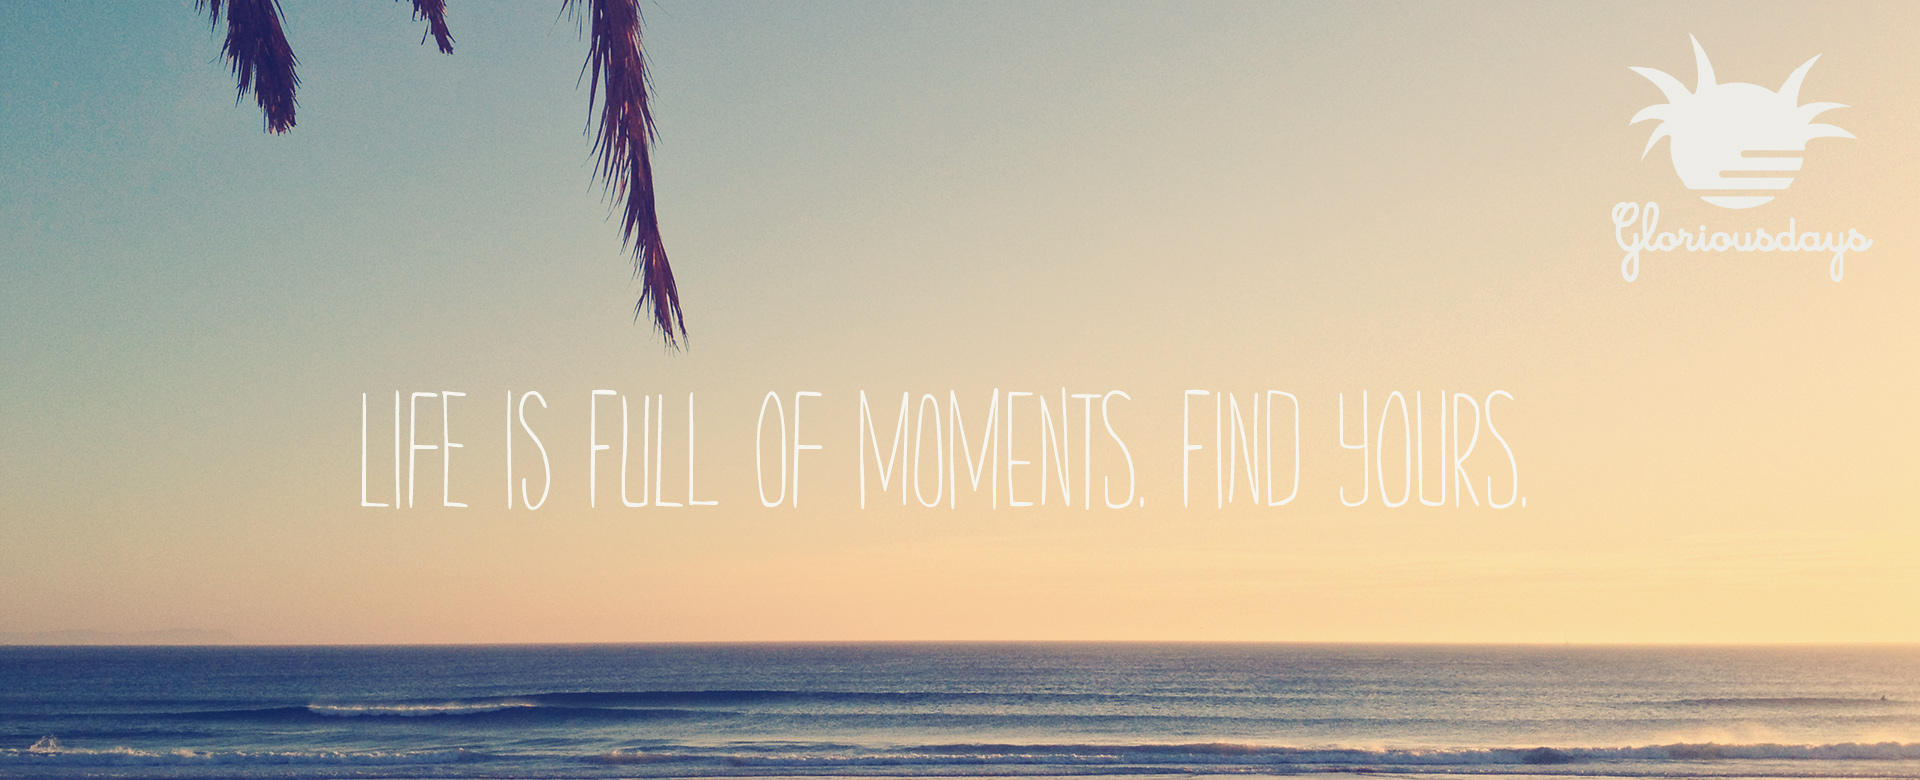 Banner showing the ocean and with the tagline 'Life is full of moments. Find yours.'